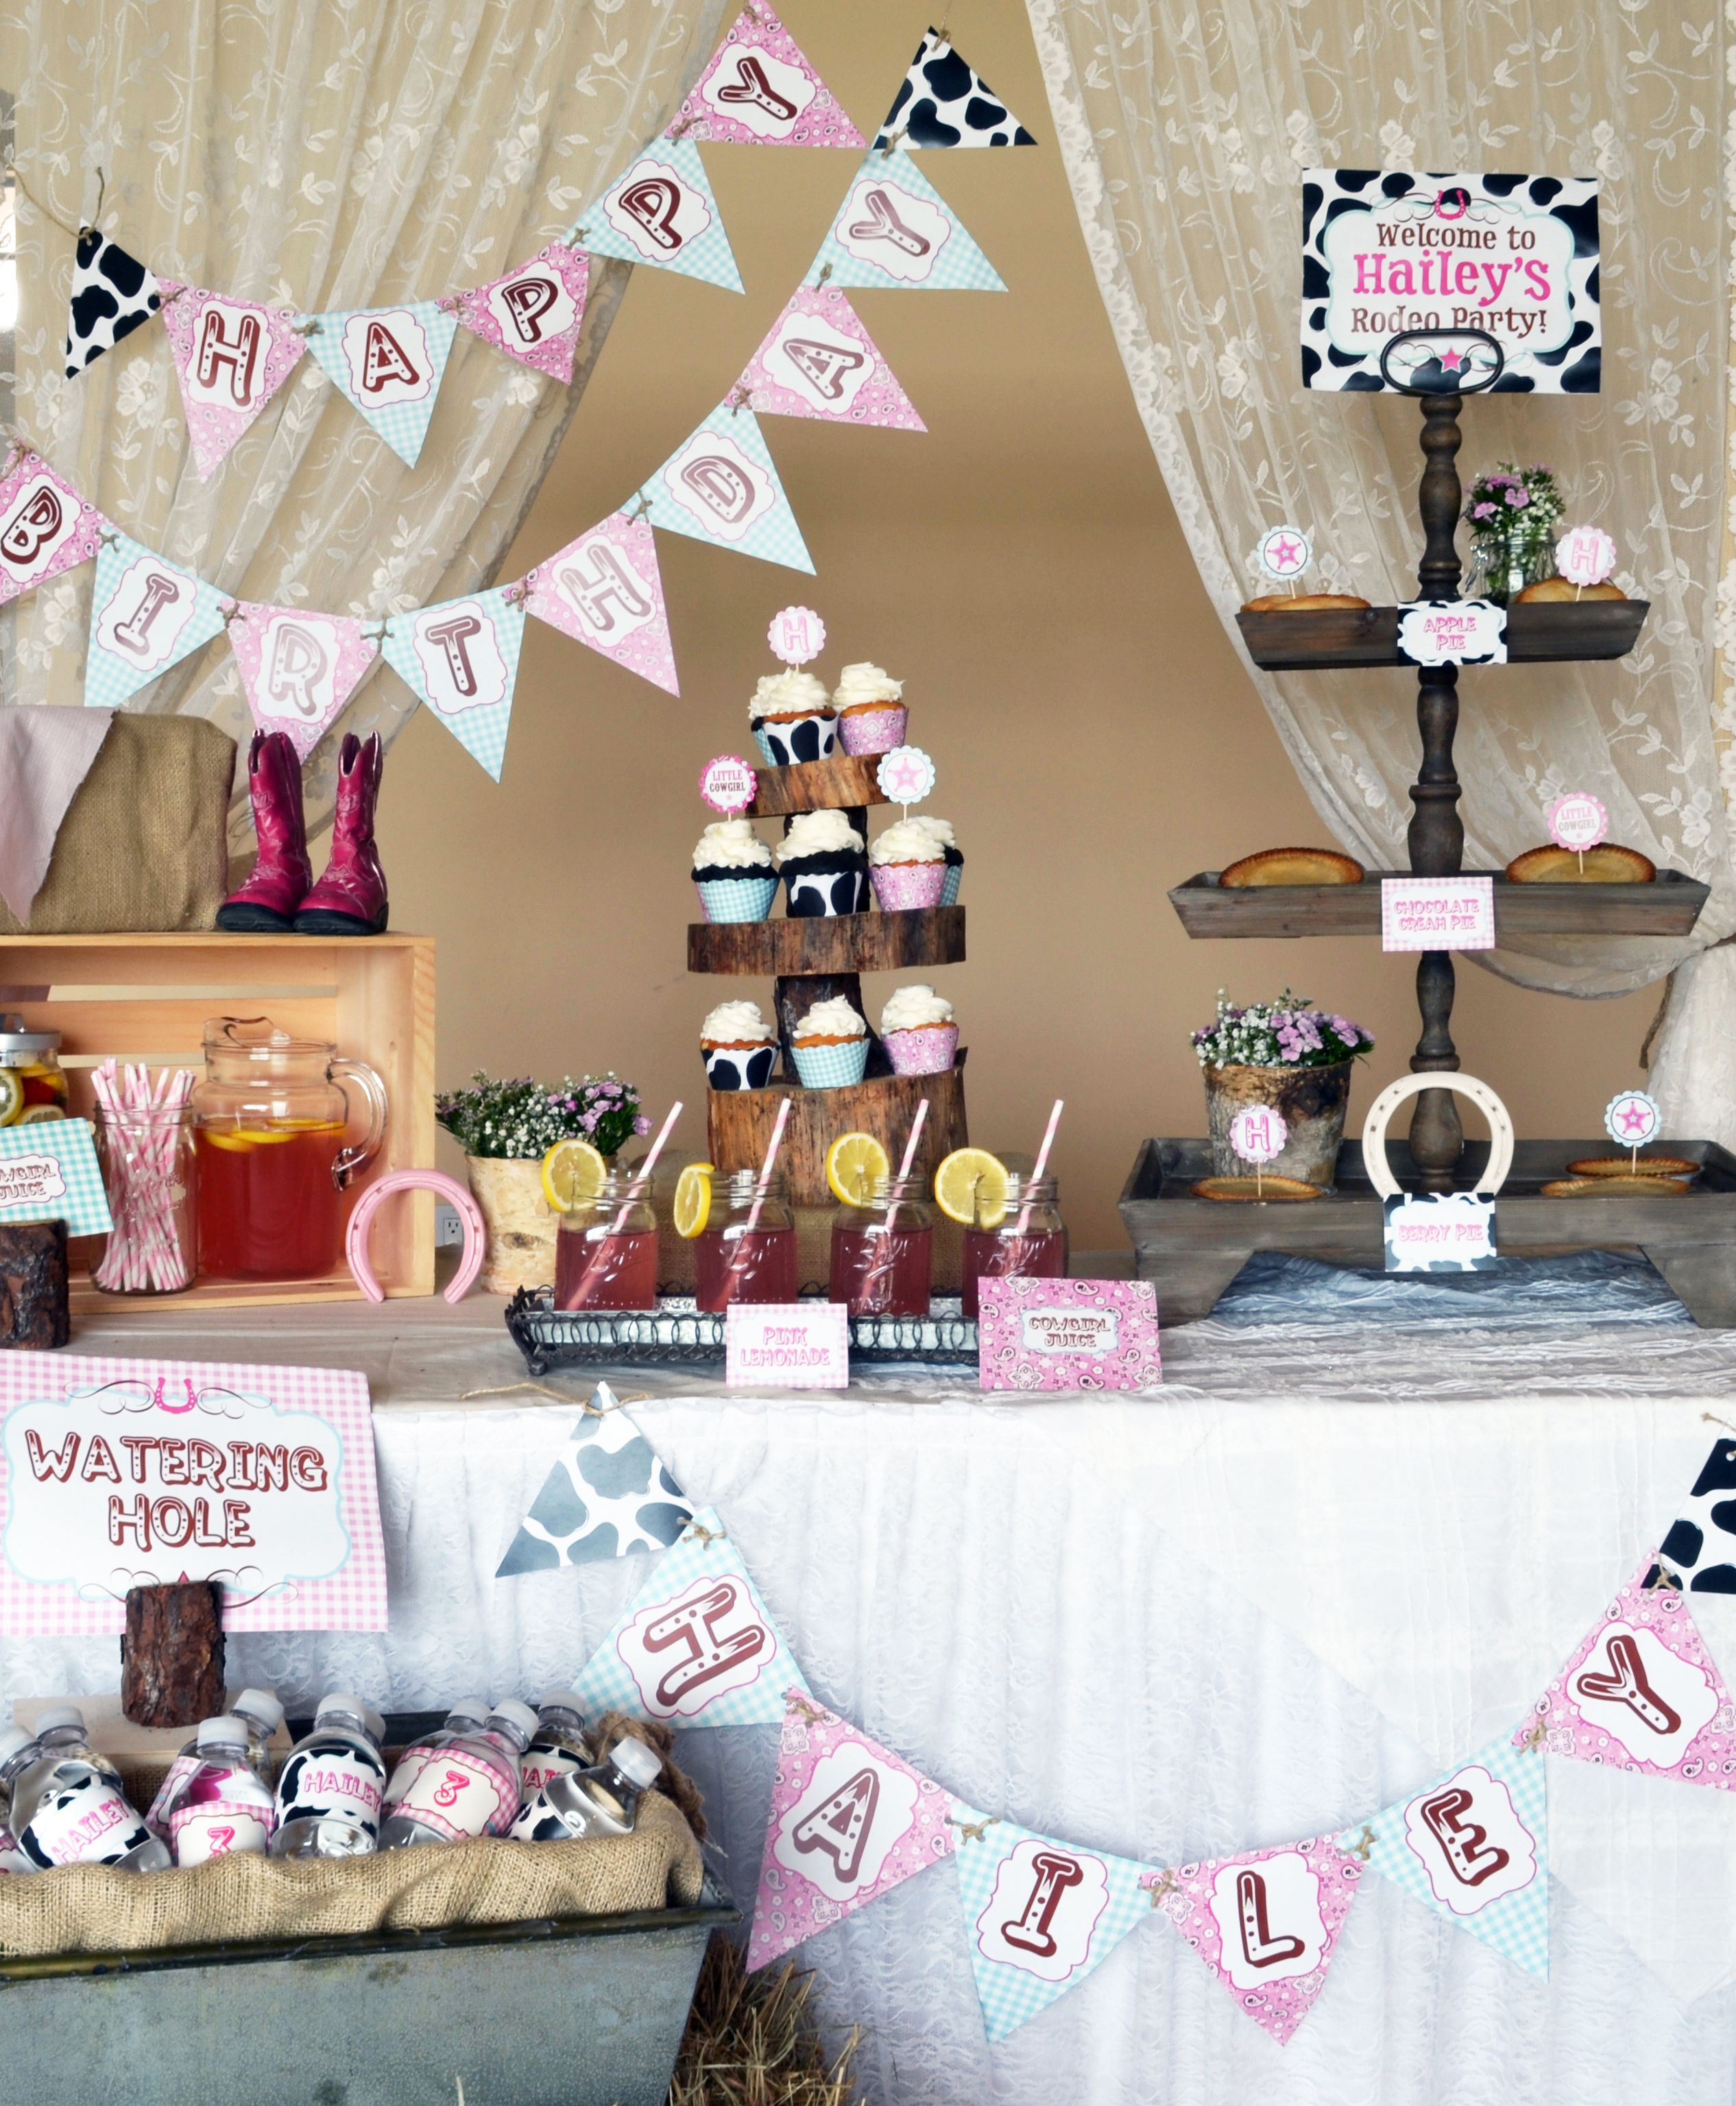 2nd Bday Party Party Ideas 17th Birthday Party Ideas